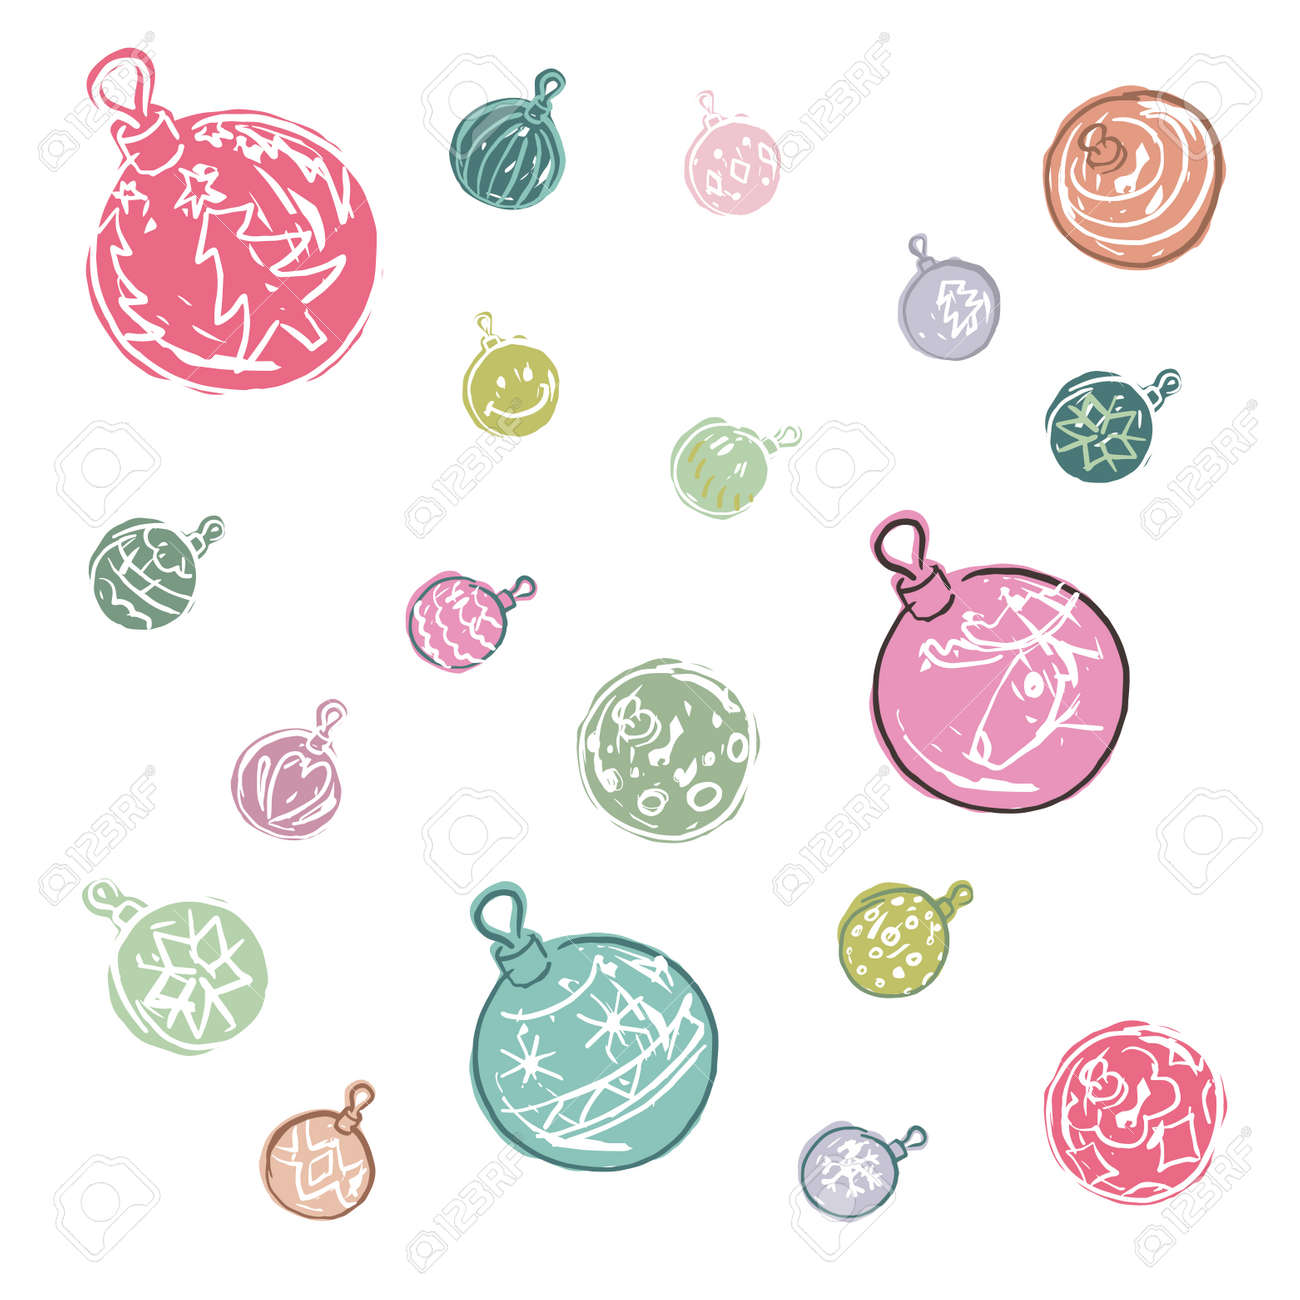 Decorations De Boule De Noel De Couleur De Dessin Anime Clip Art